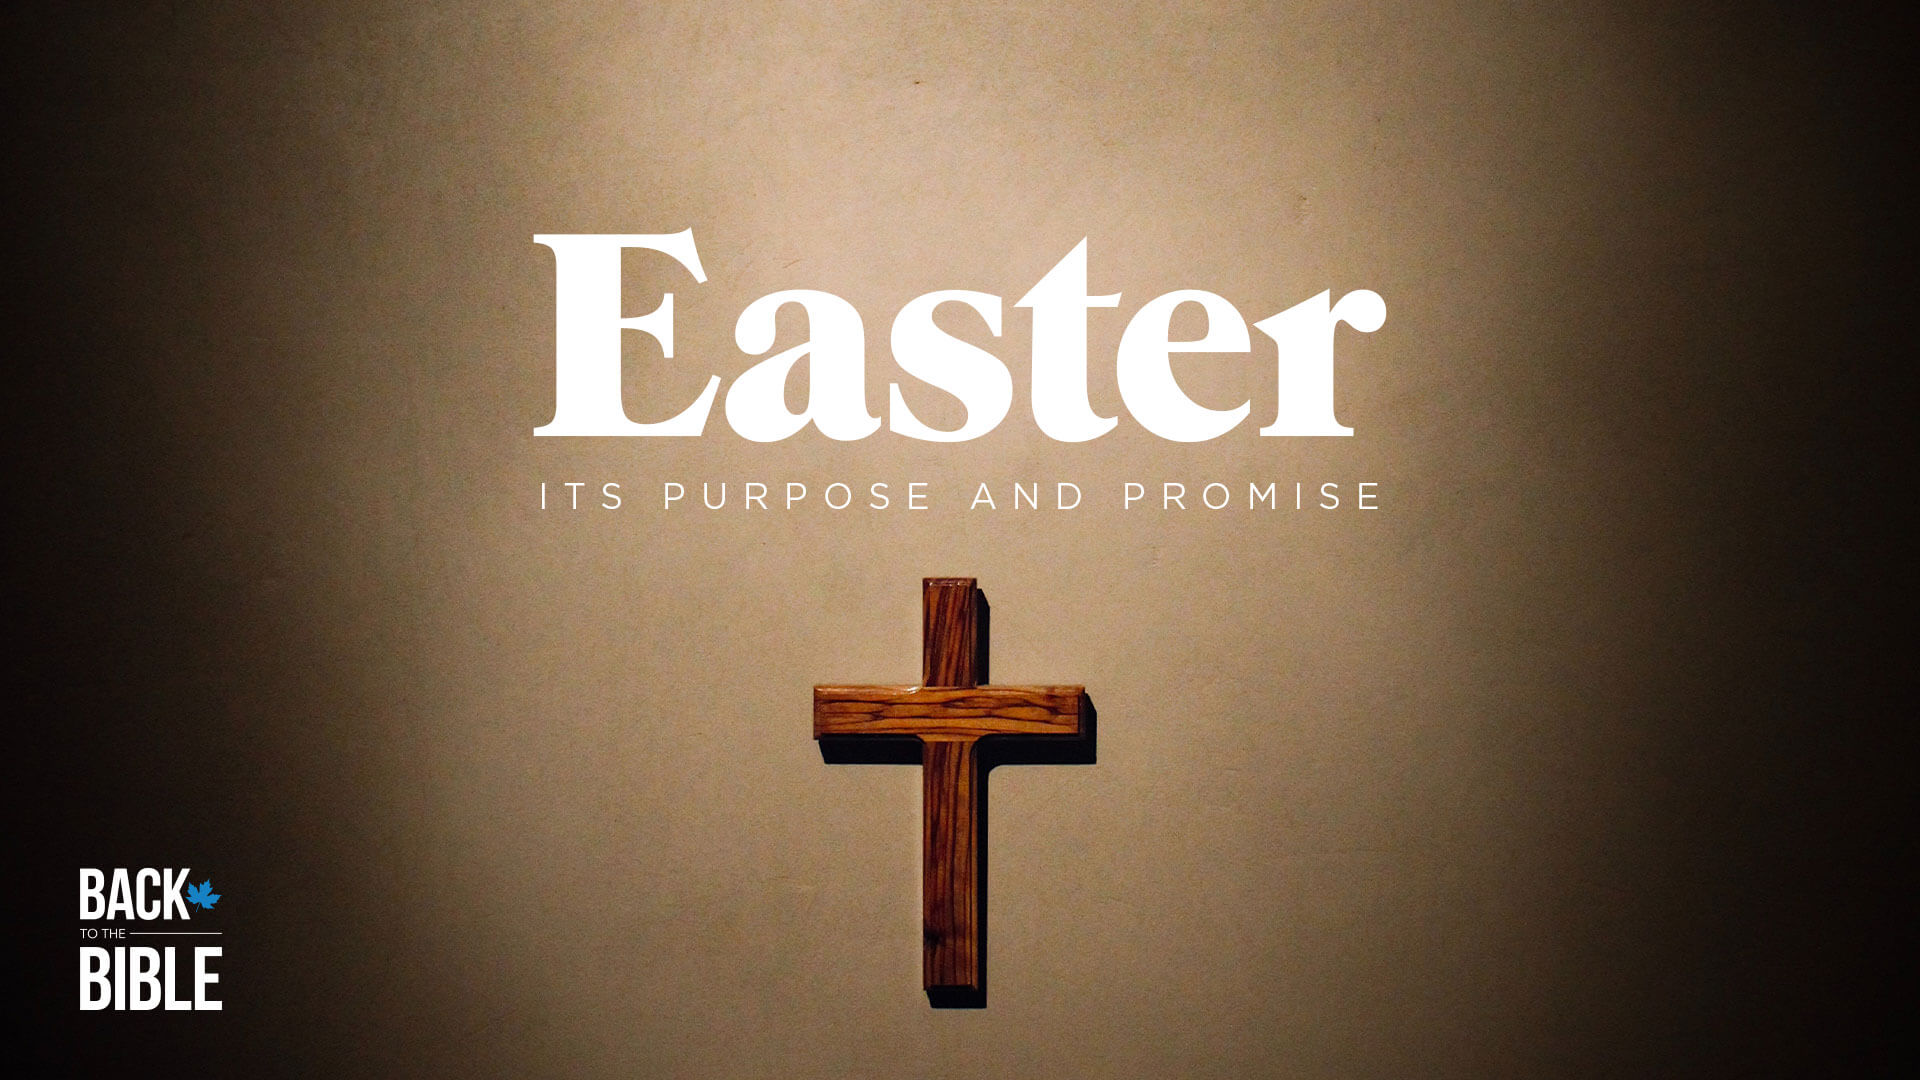 Easter - Its Purpose and Promise